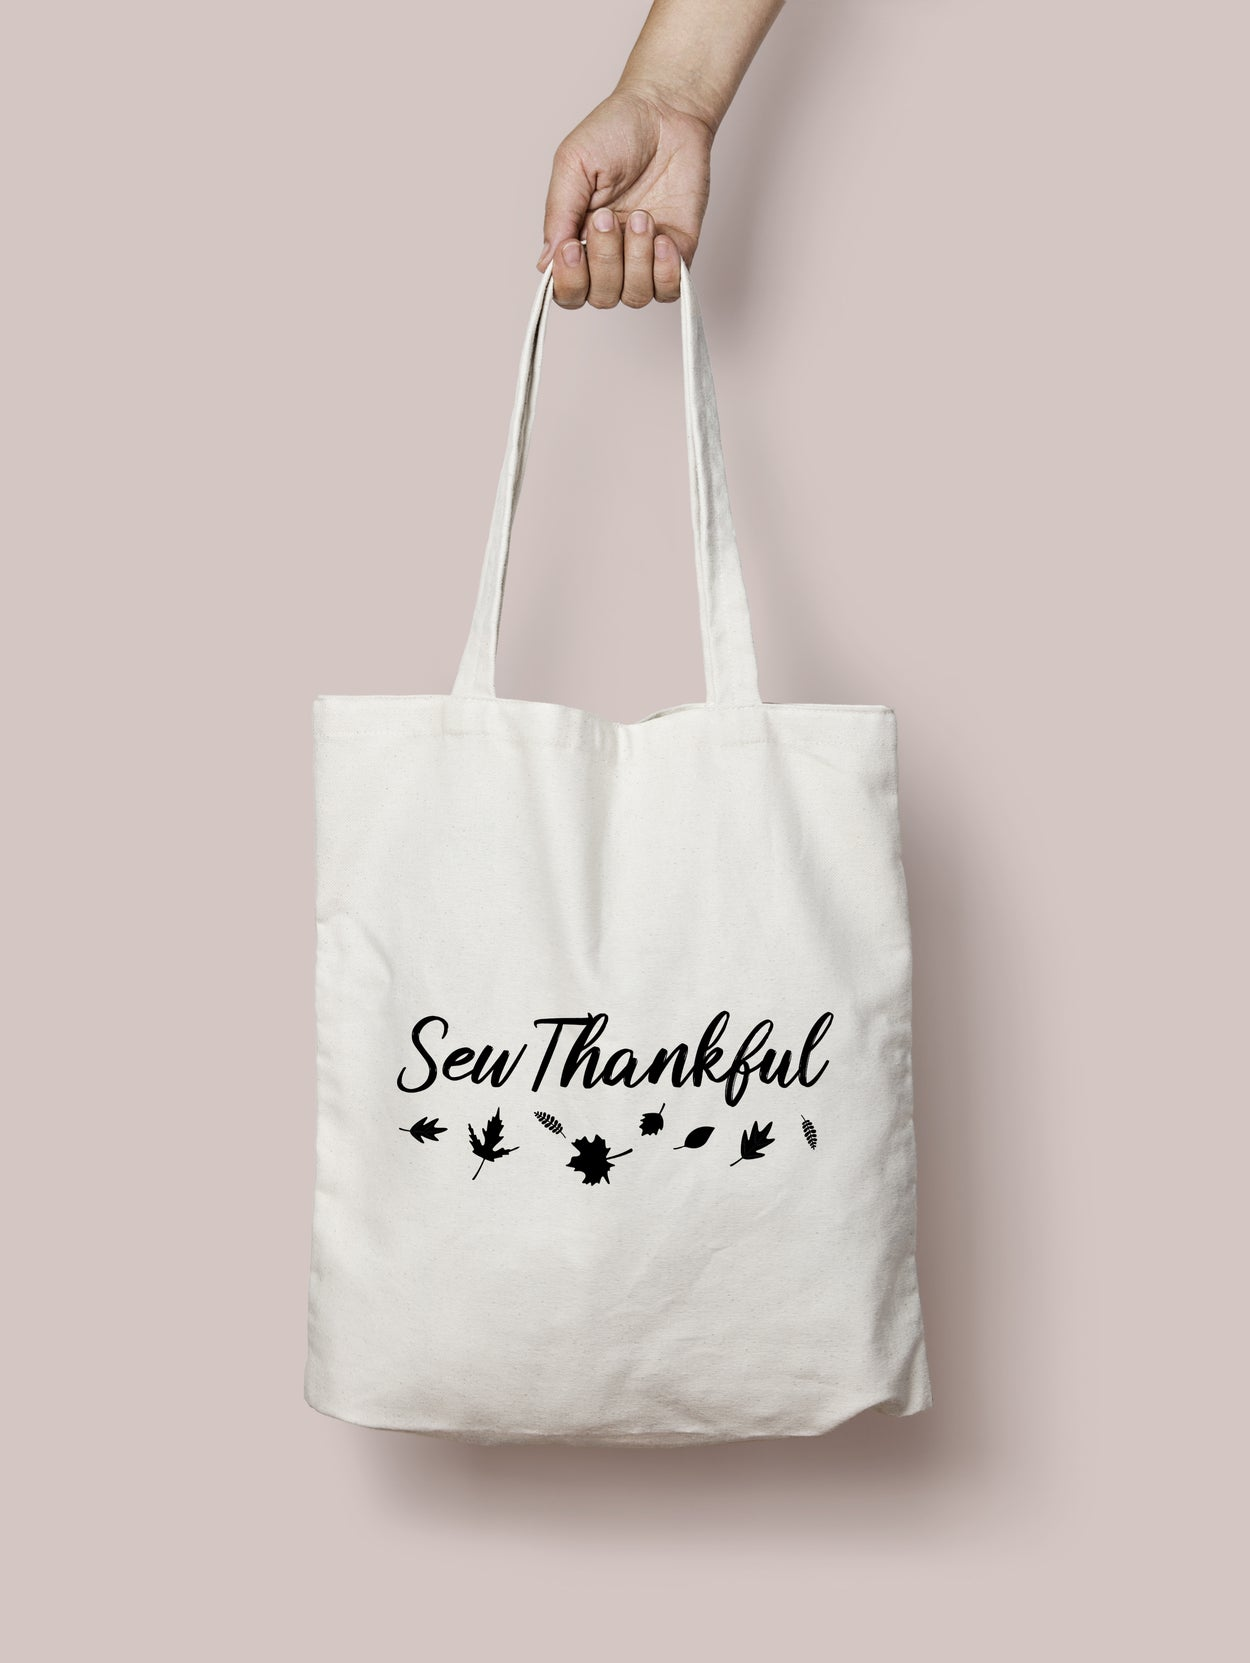 *NEW Holiday Collection* Sew Thankful Tote